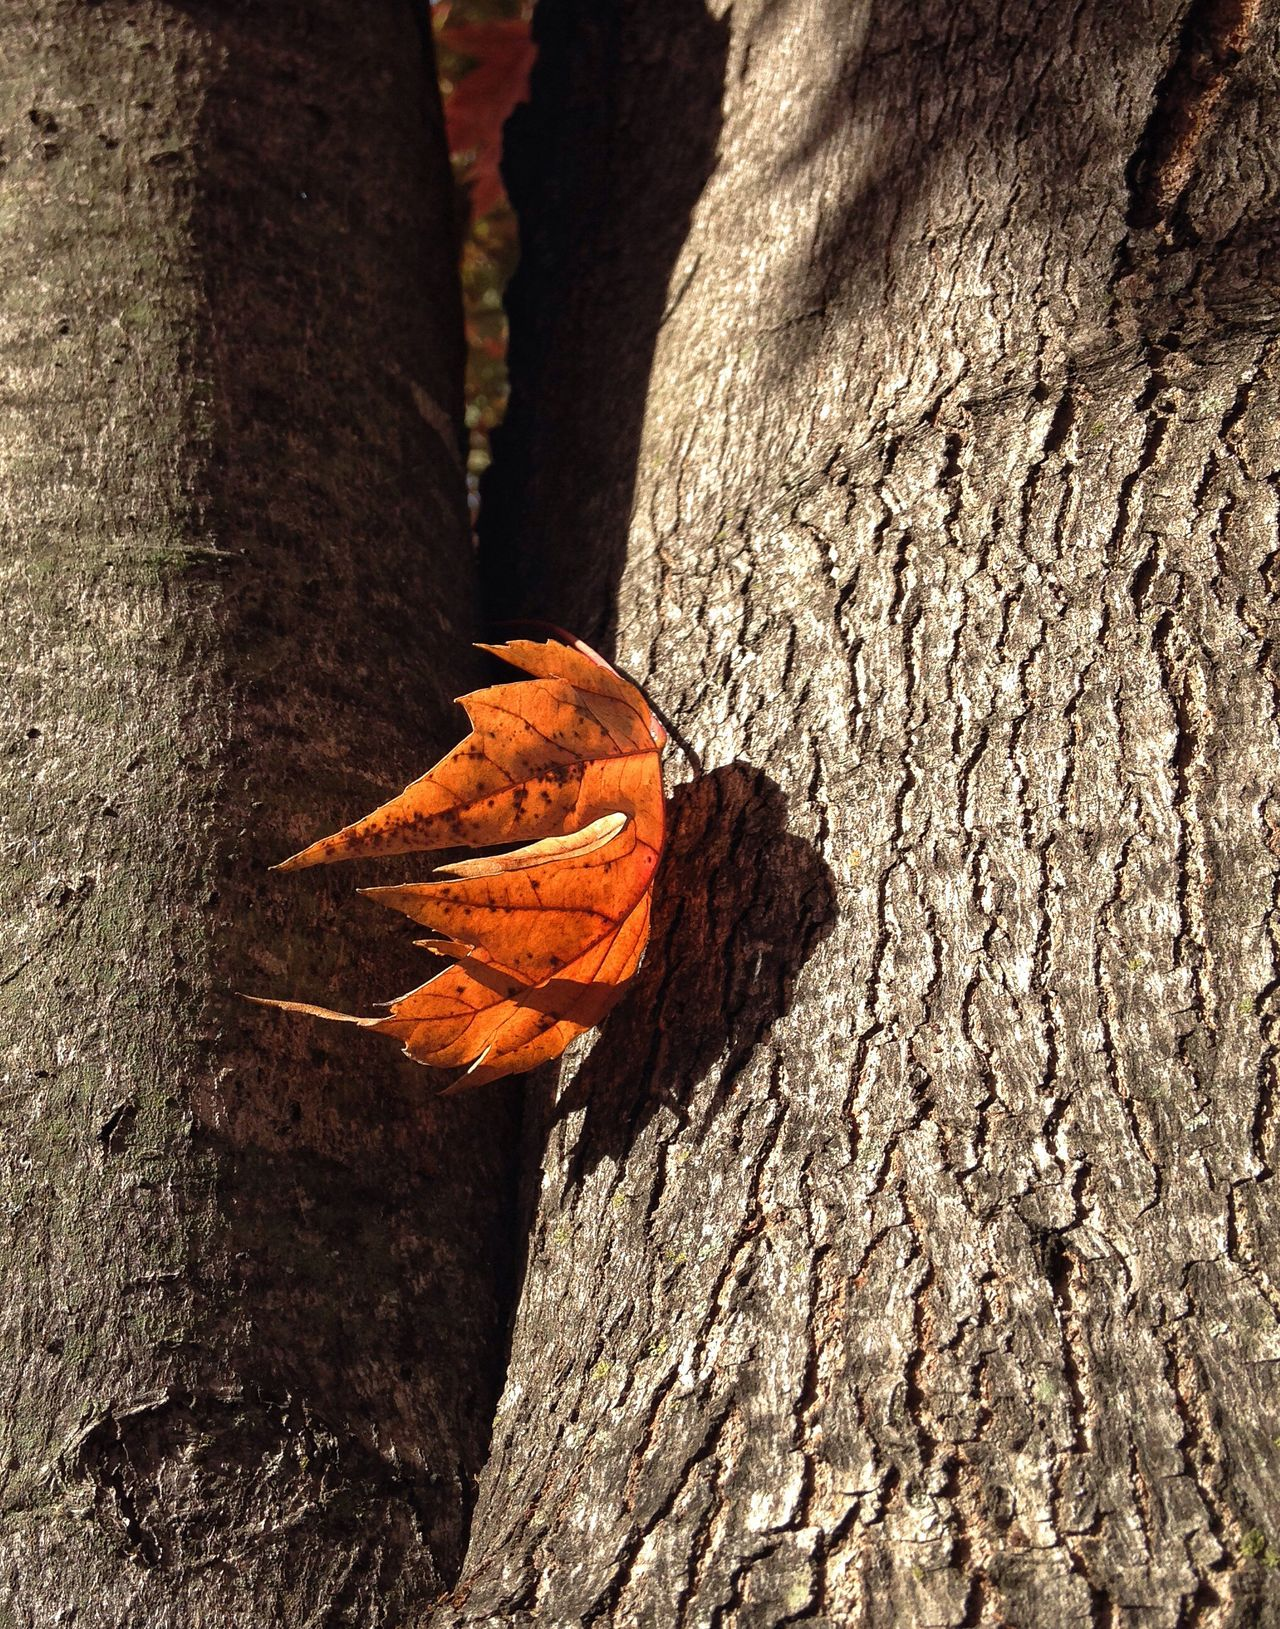 Autumn Autumn Leaves Tree Trunk Nature_collection Naturelovers Textured  Close-up Bark Botany Nature Orange Color Beauty In Nature Fragility Rugged Tranquility Vibrant Color One Lone Leaf